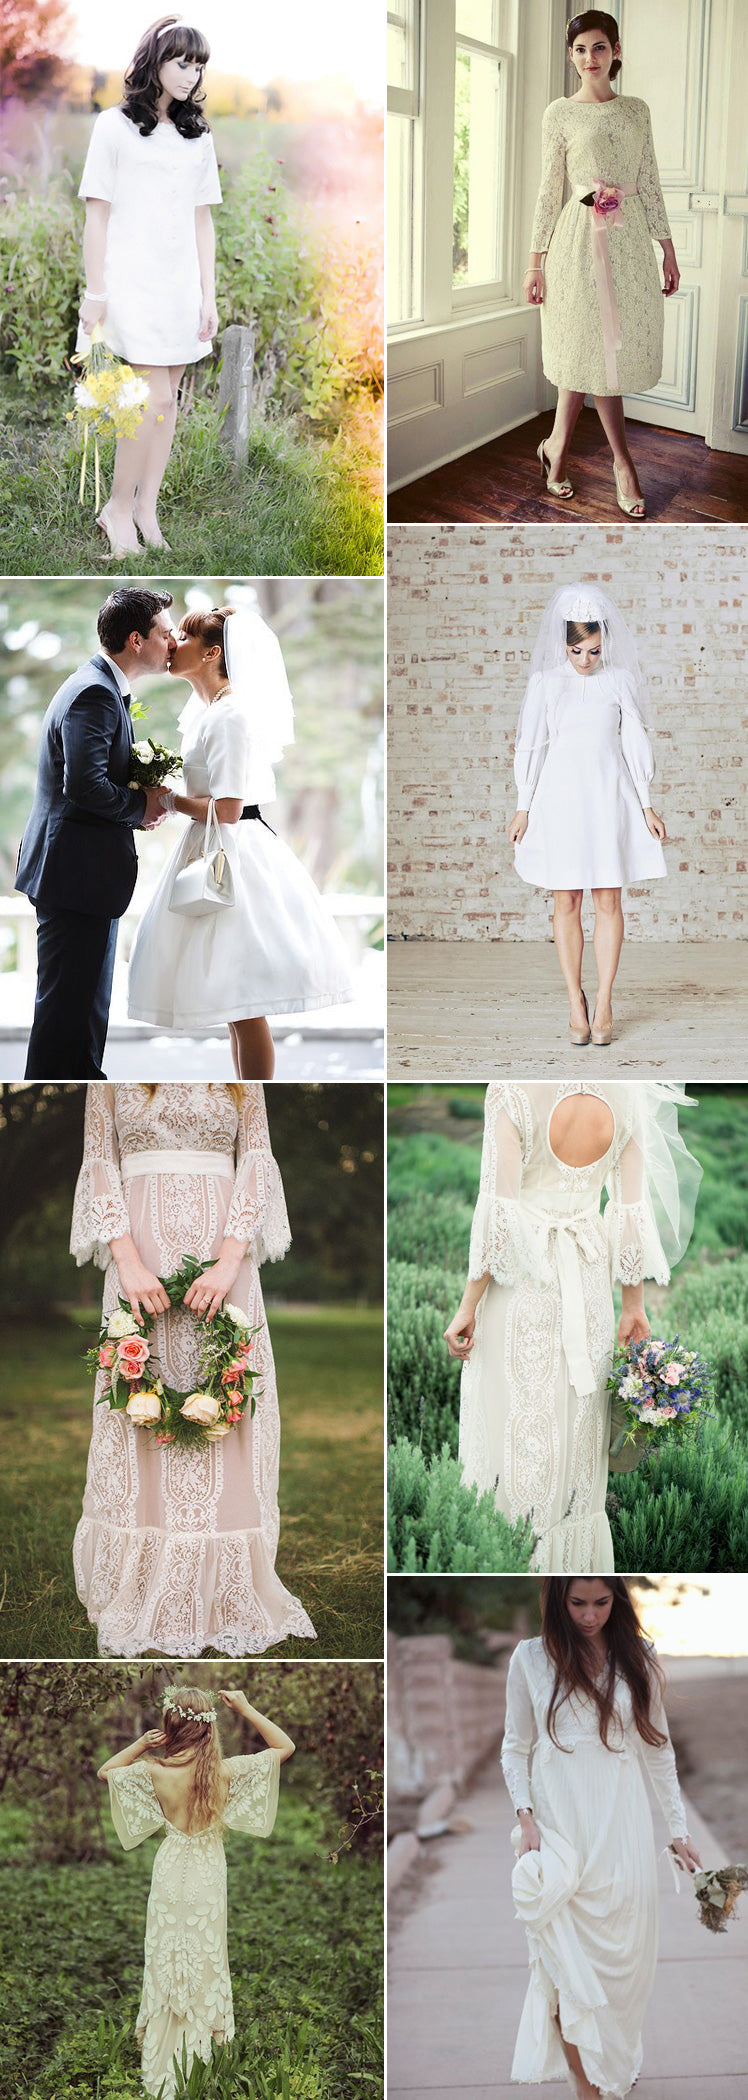 1960s and 1970s bridal dress ideas